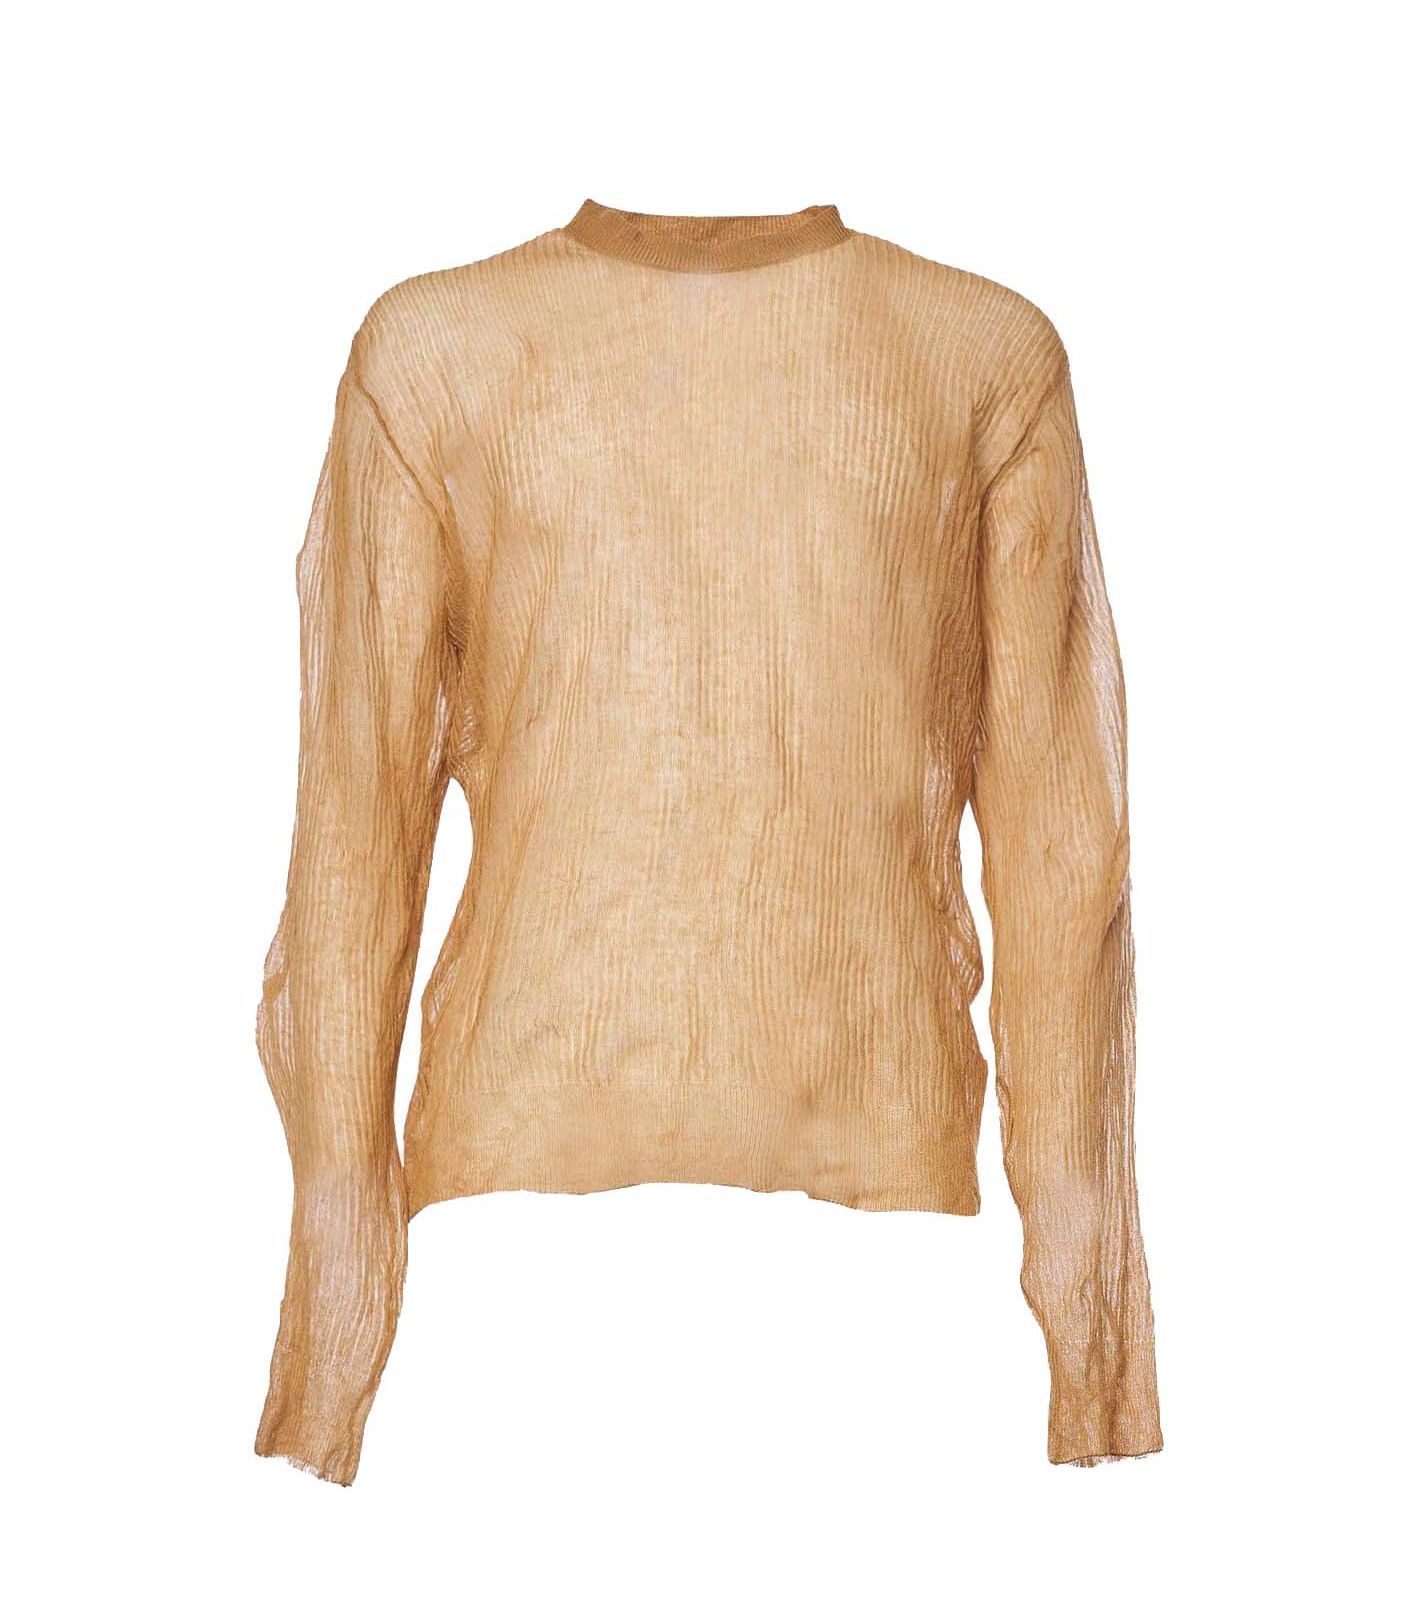 Grifoni sweater roundneck man beige GRIFONI | Sweaters | GI310019522